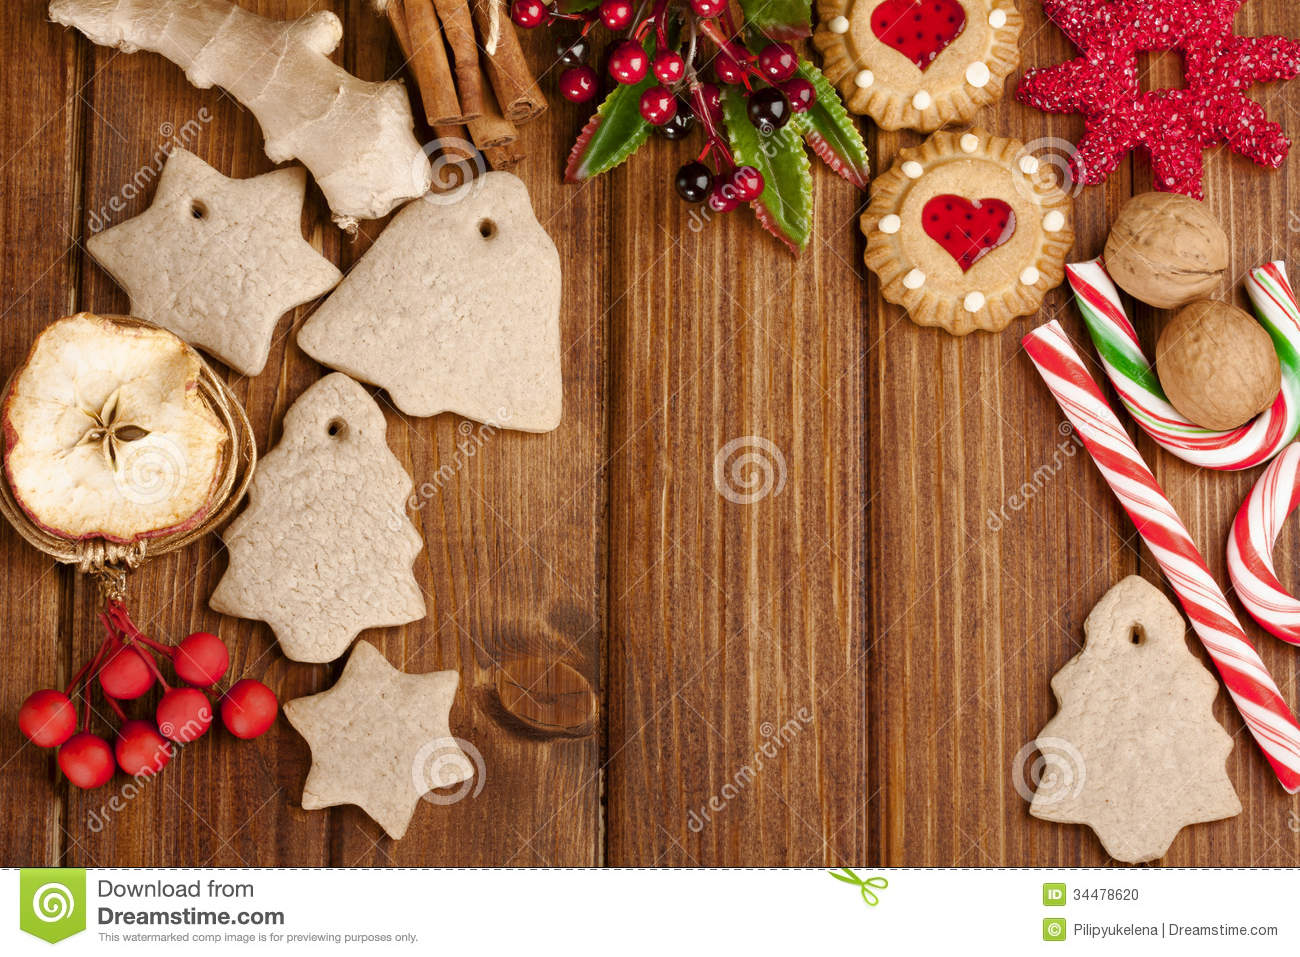 #3B1C08 Christmas Homemade Gingerbread Cookies Spice And  6431 décoration noel home made 1300x957 px @ aertt.com